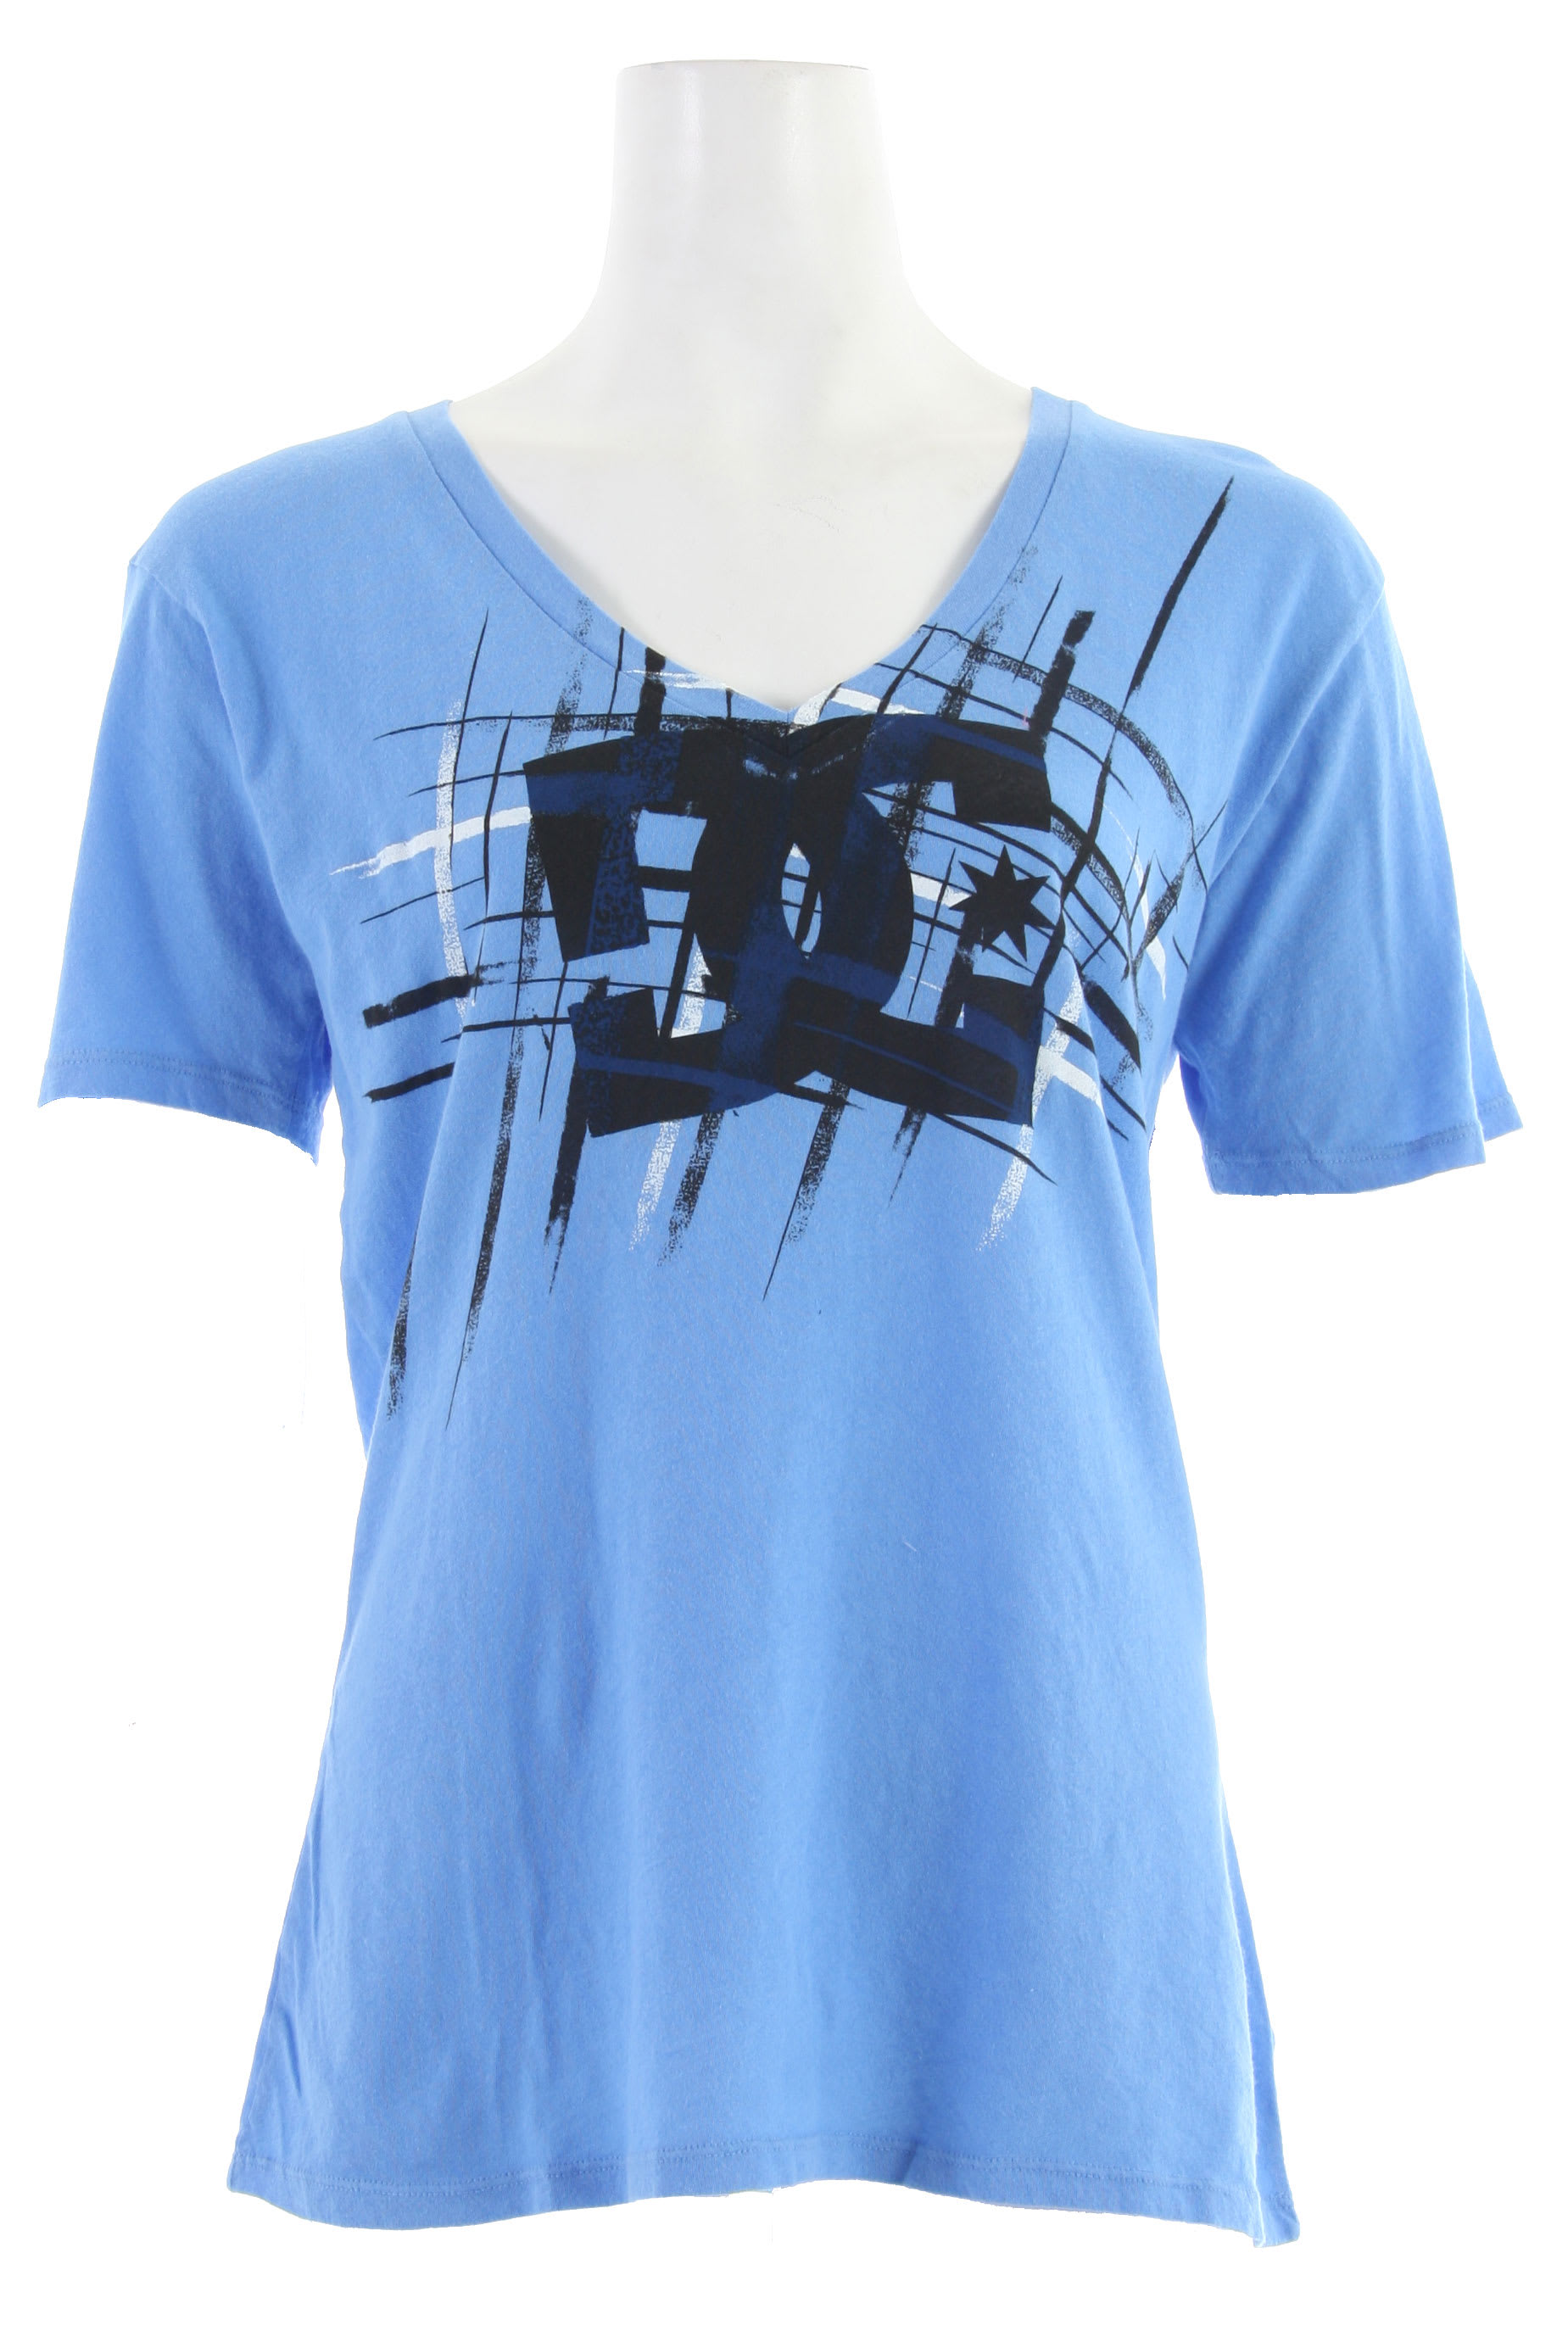 Shop for DC Glam Slam T-Shirt Marine - Women's